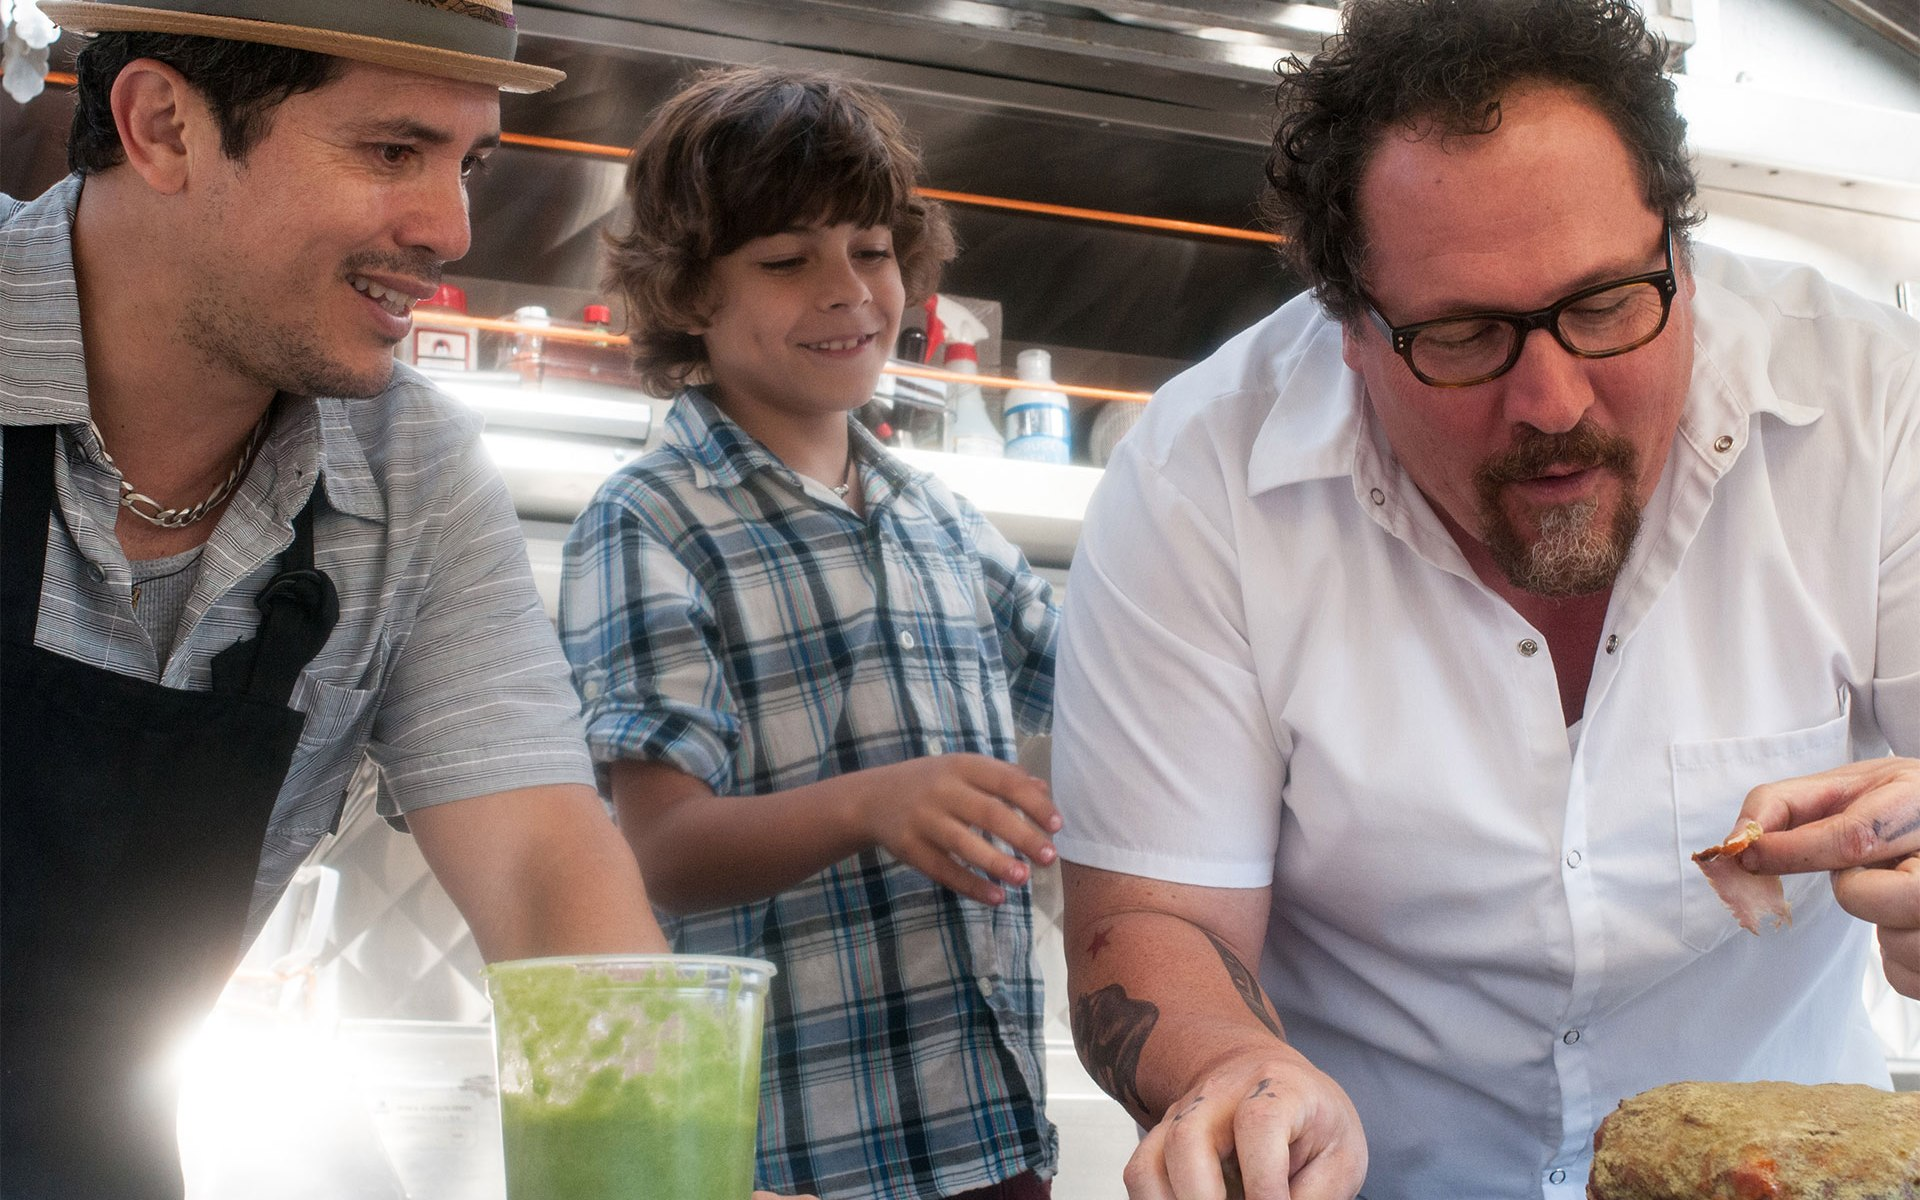 John Leguizamo, Emhay Anthony, and Jon Favreau in Chef